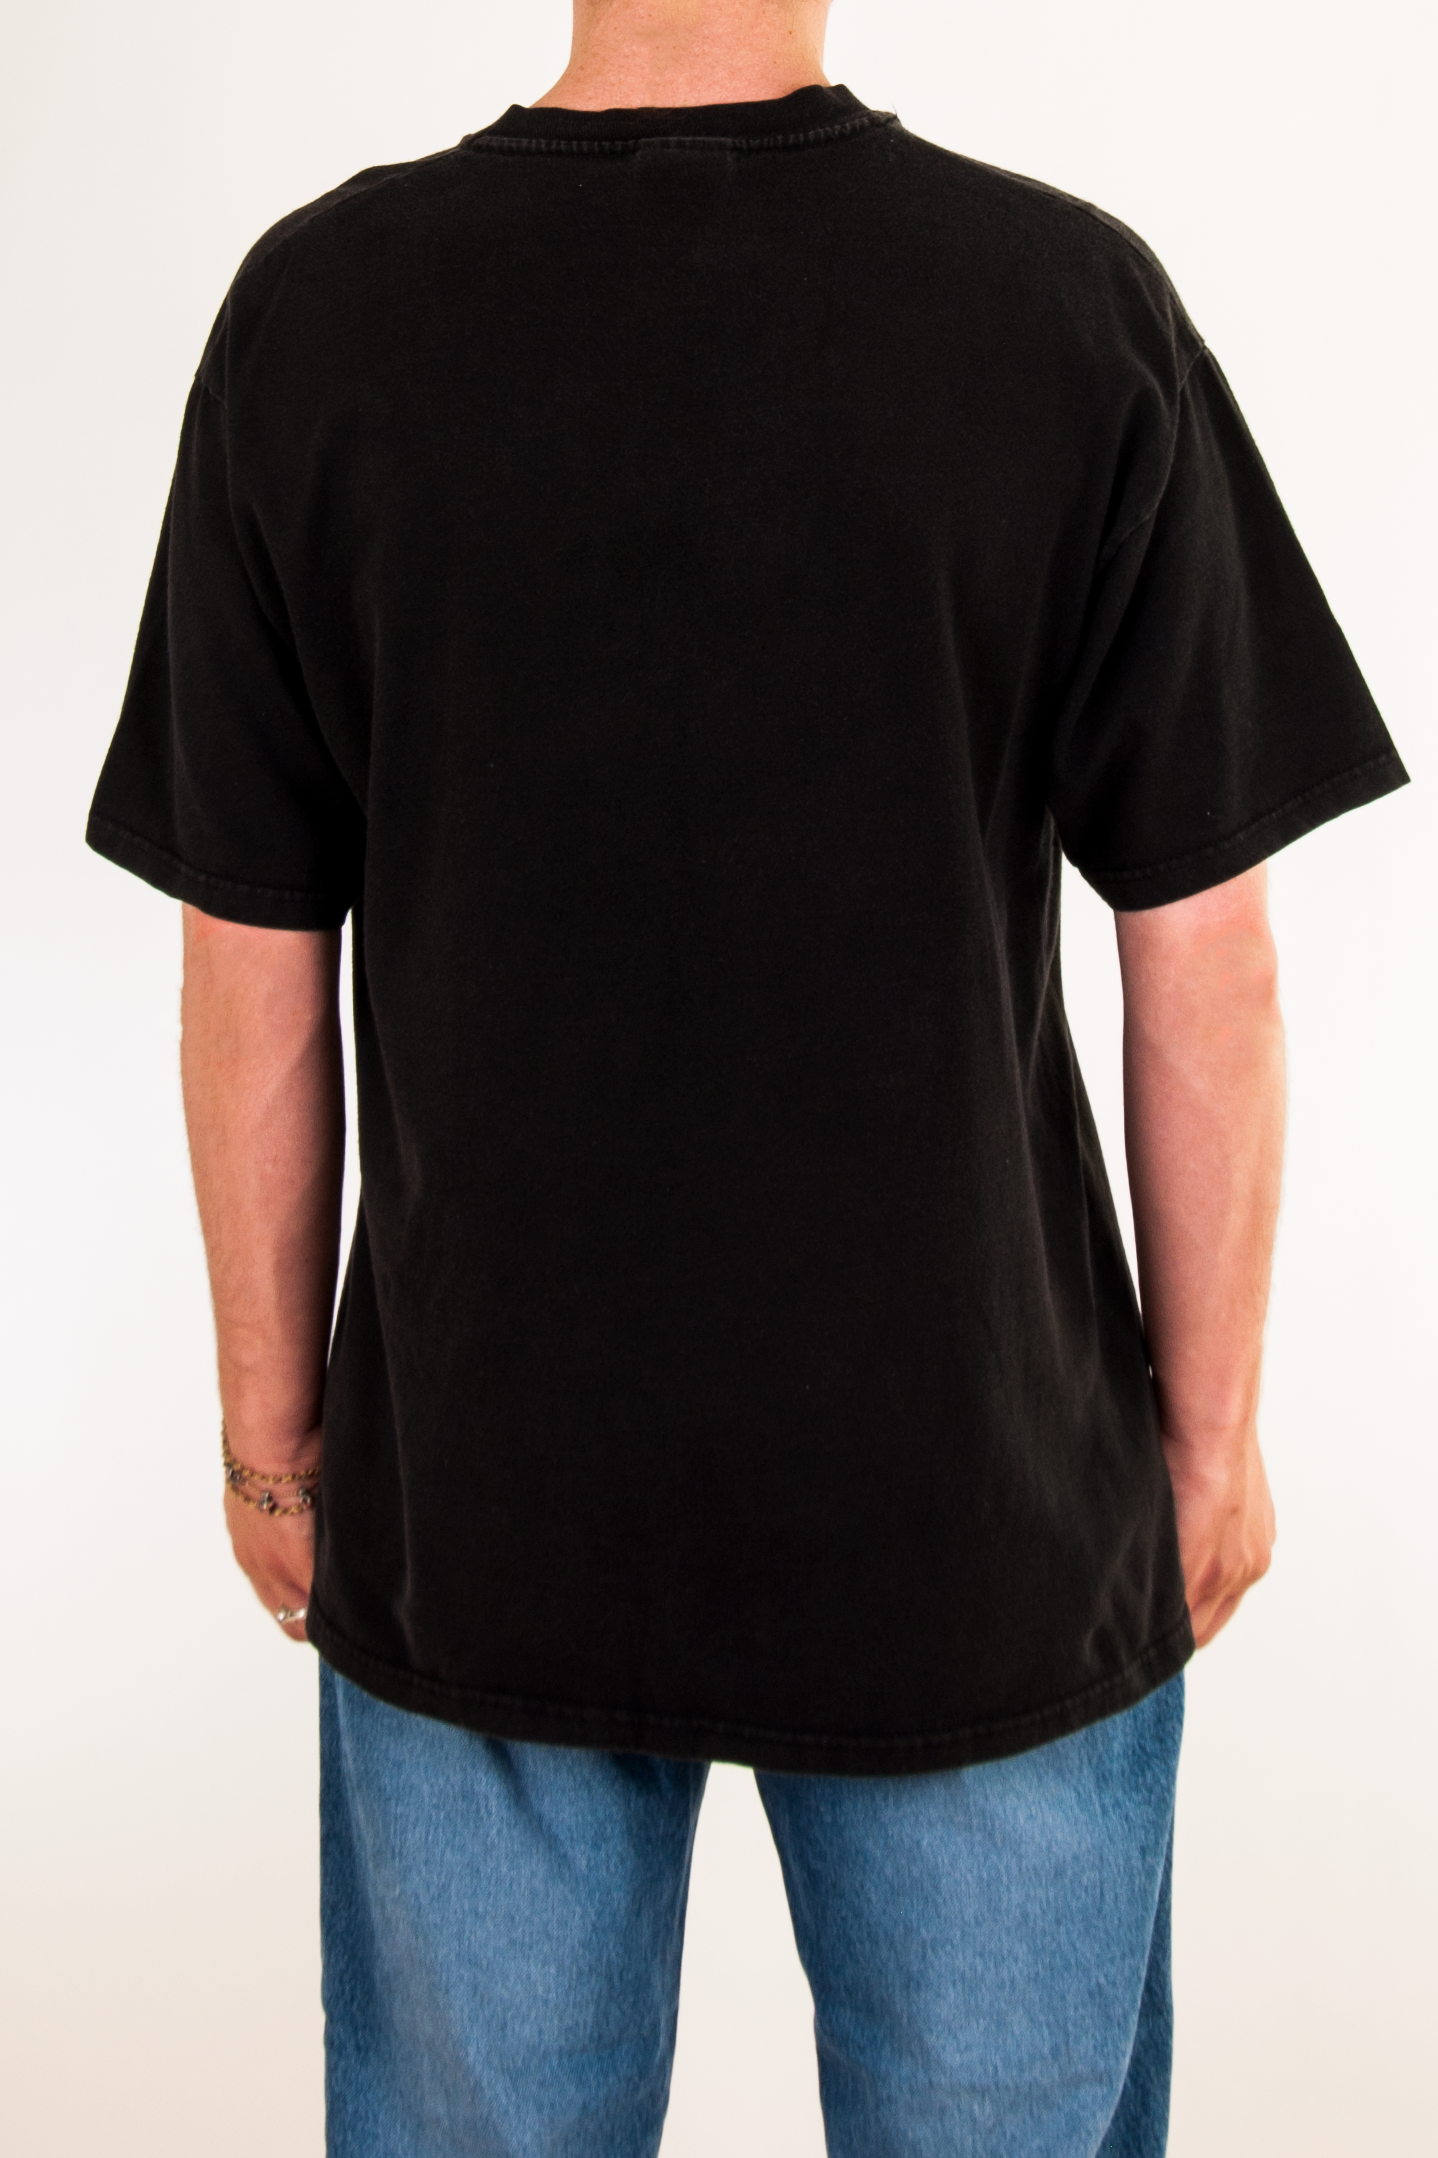 back view of a vintage black t-shirt